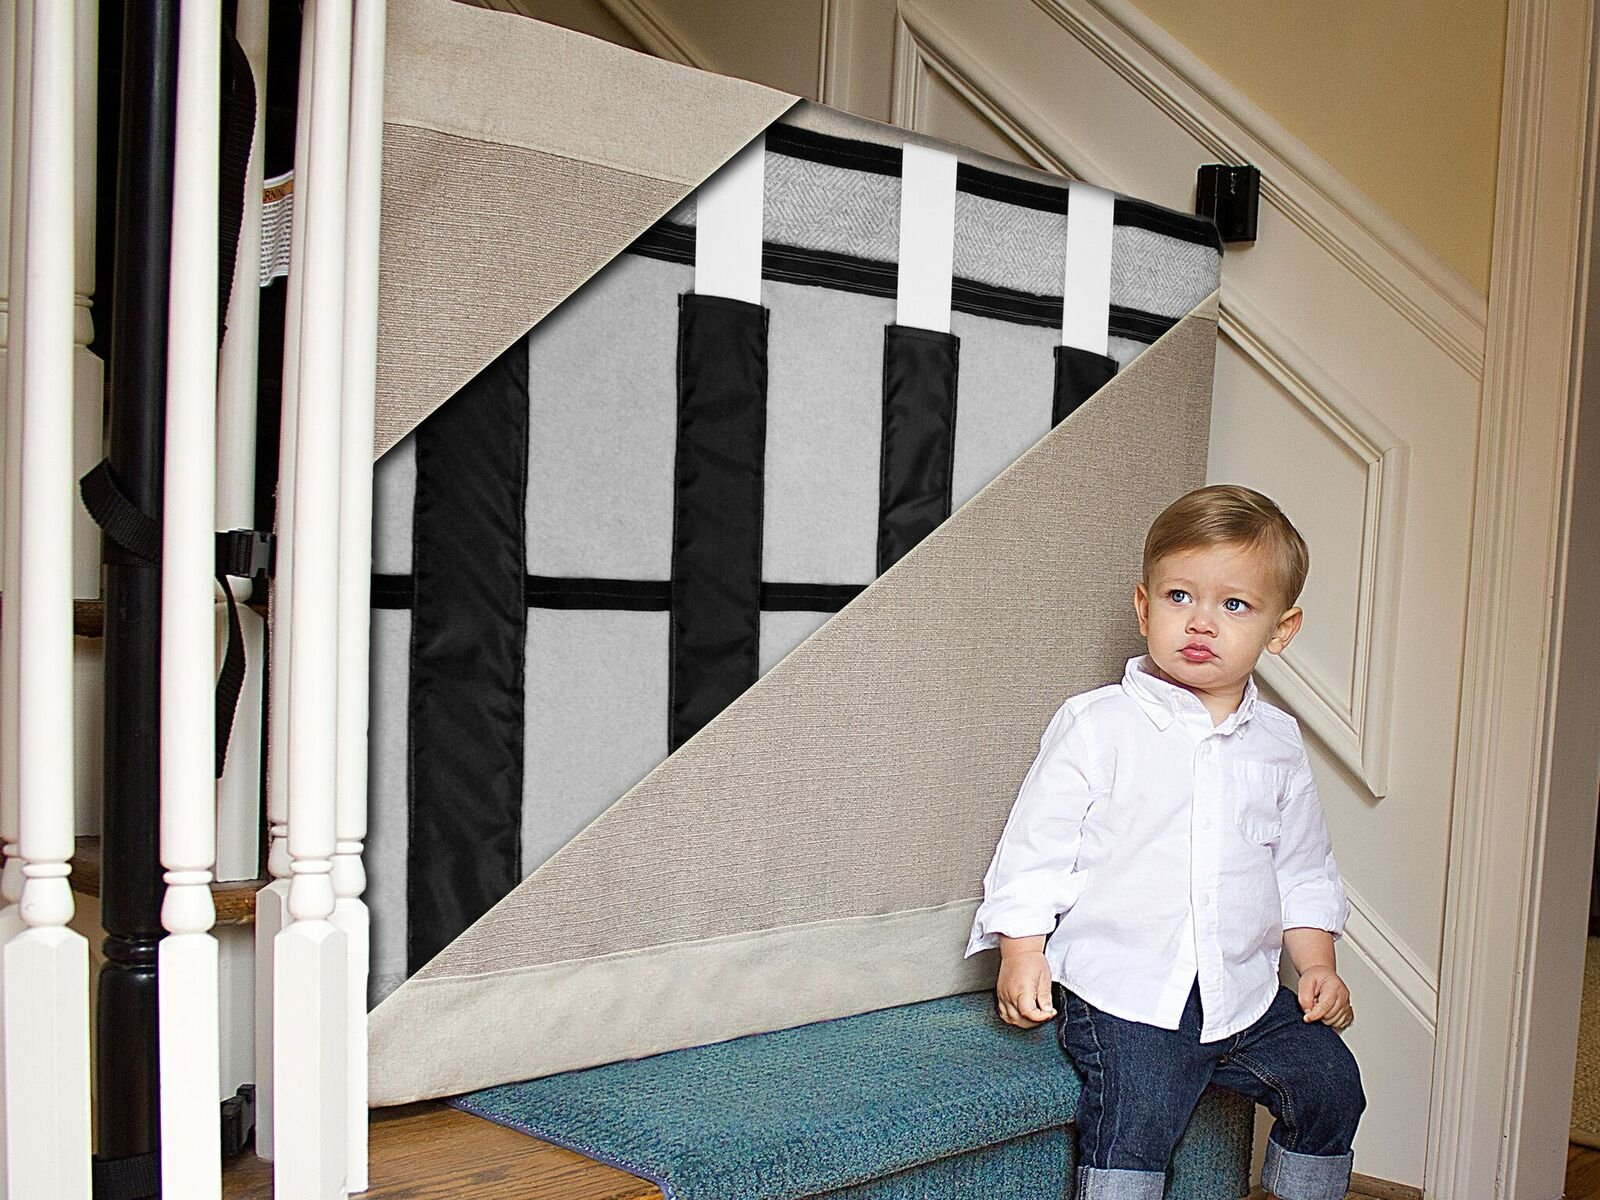 The Stair Barrier Baby and Pet Gate – Wall-to-Banister- Retractable Fabric Safety Gate Wide and Regular Sizes - Made in the USA – Grey by THE STAIR BARRIER KEEPING CHILDREN AND PETS OFF THE STAIRS (Image #5)